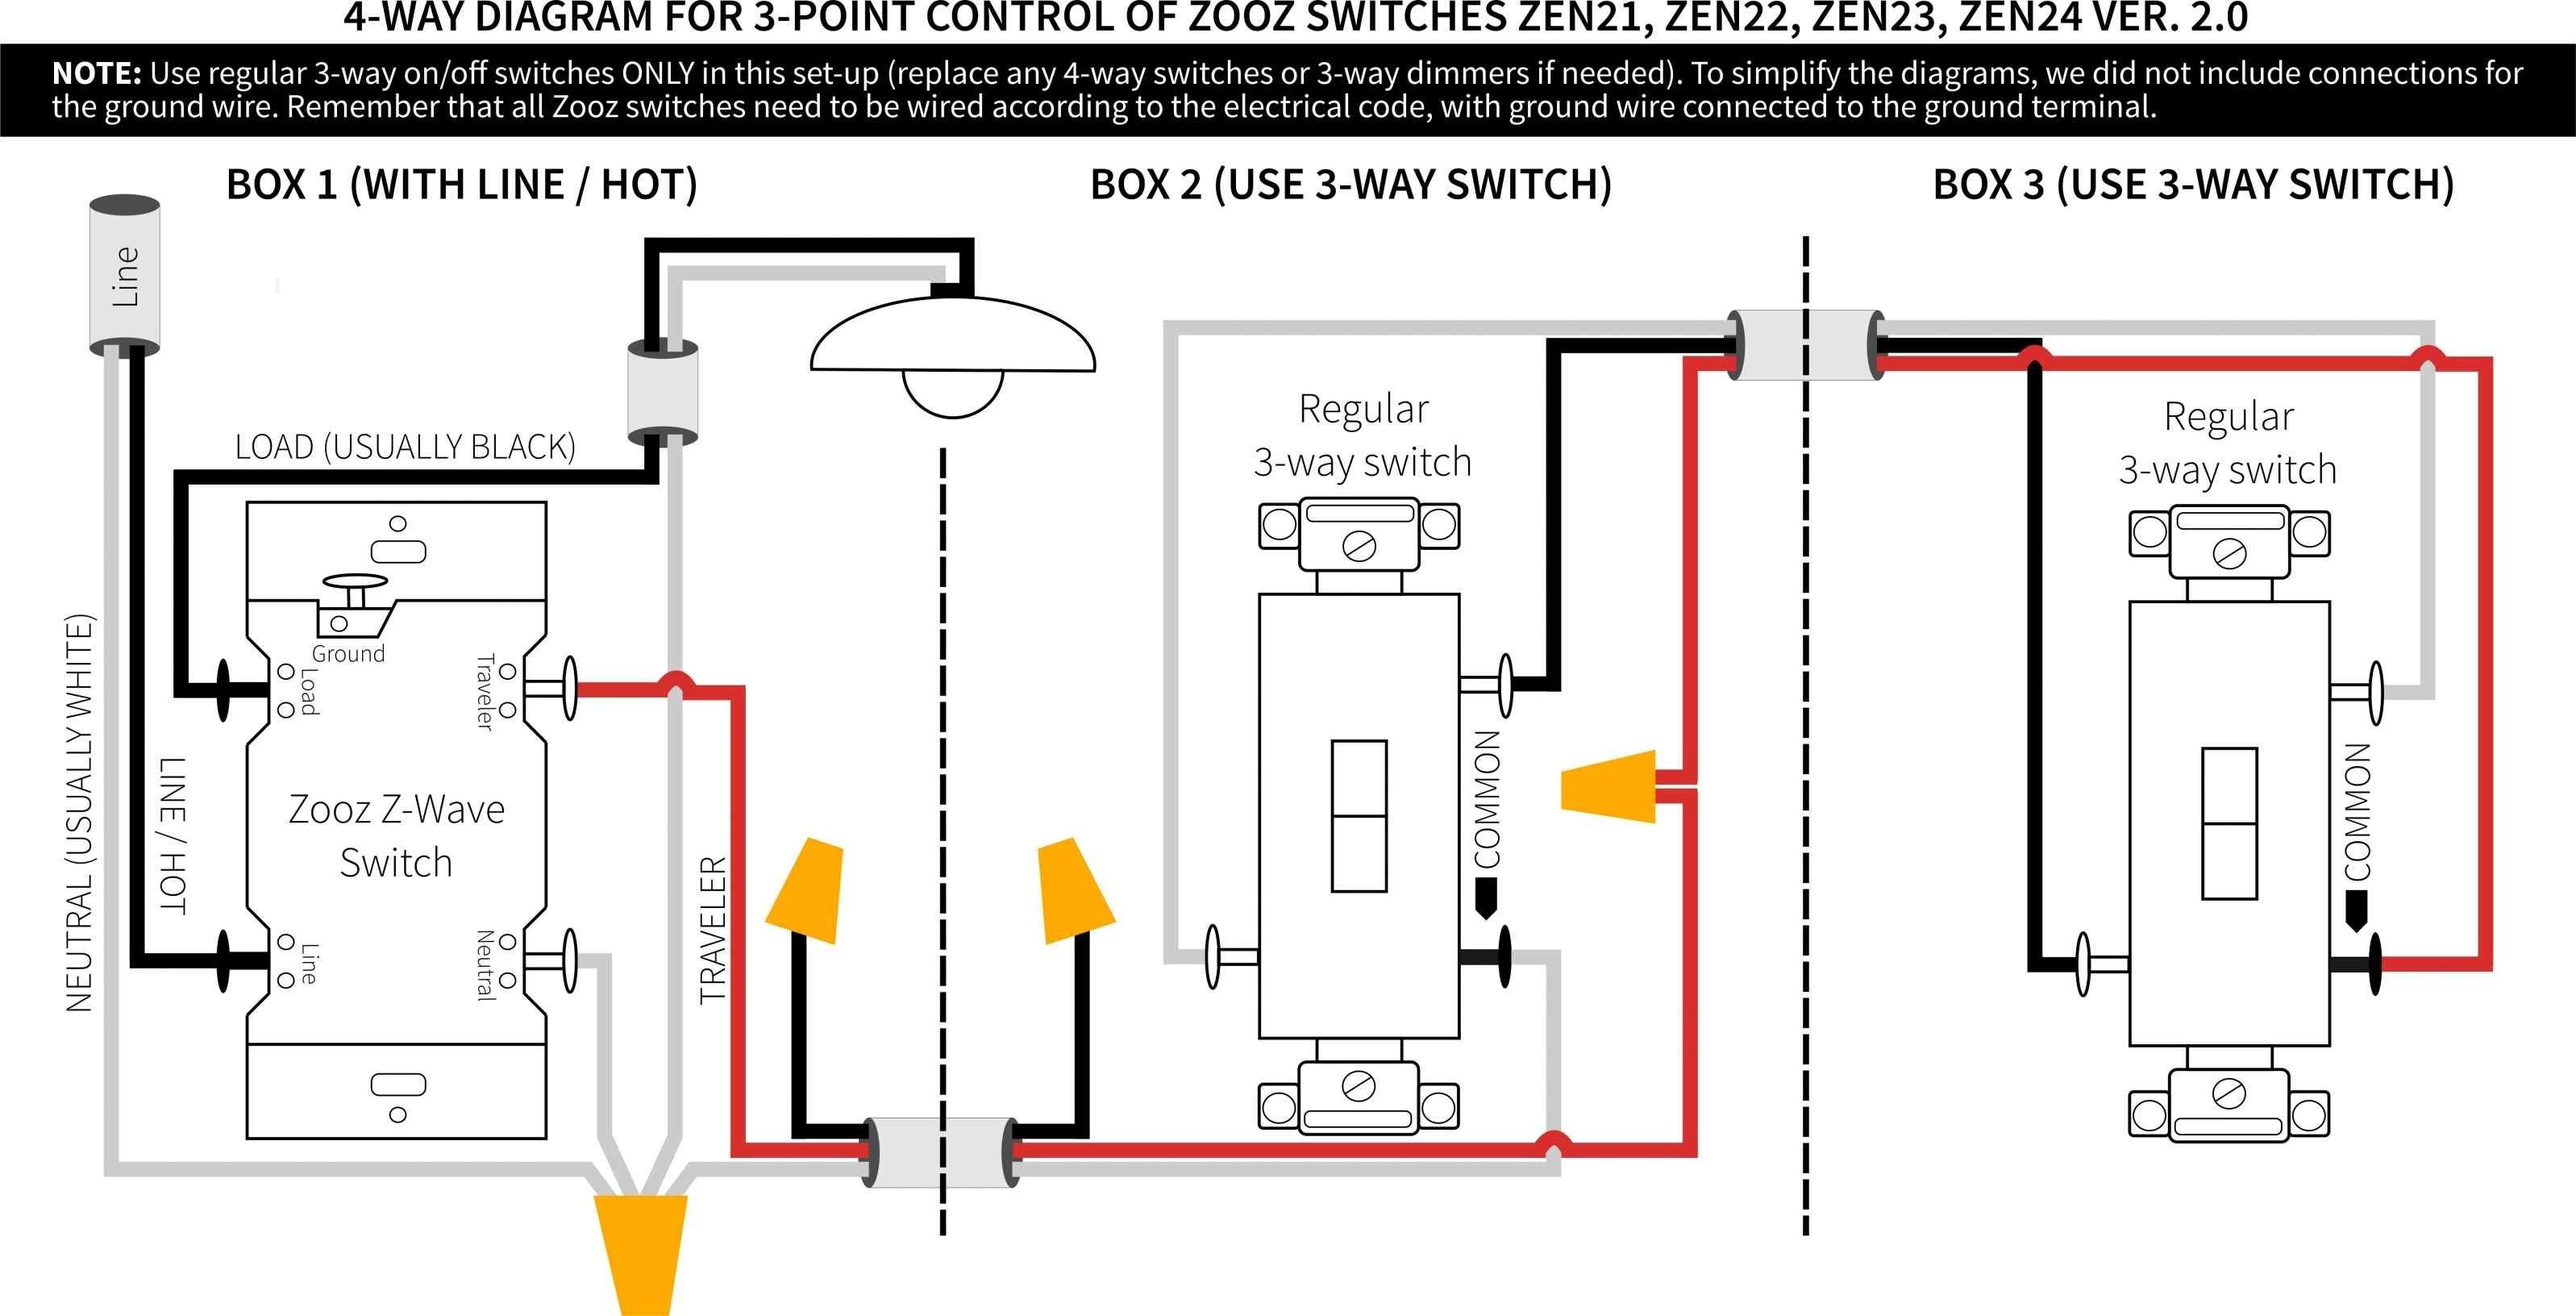 Leviton 4 Way Switch Wiring Diagram In 2020 Light Switch Wiring 3 Way Switch Wiring House Wiring